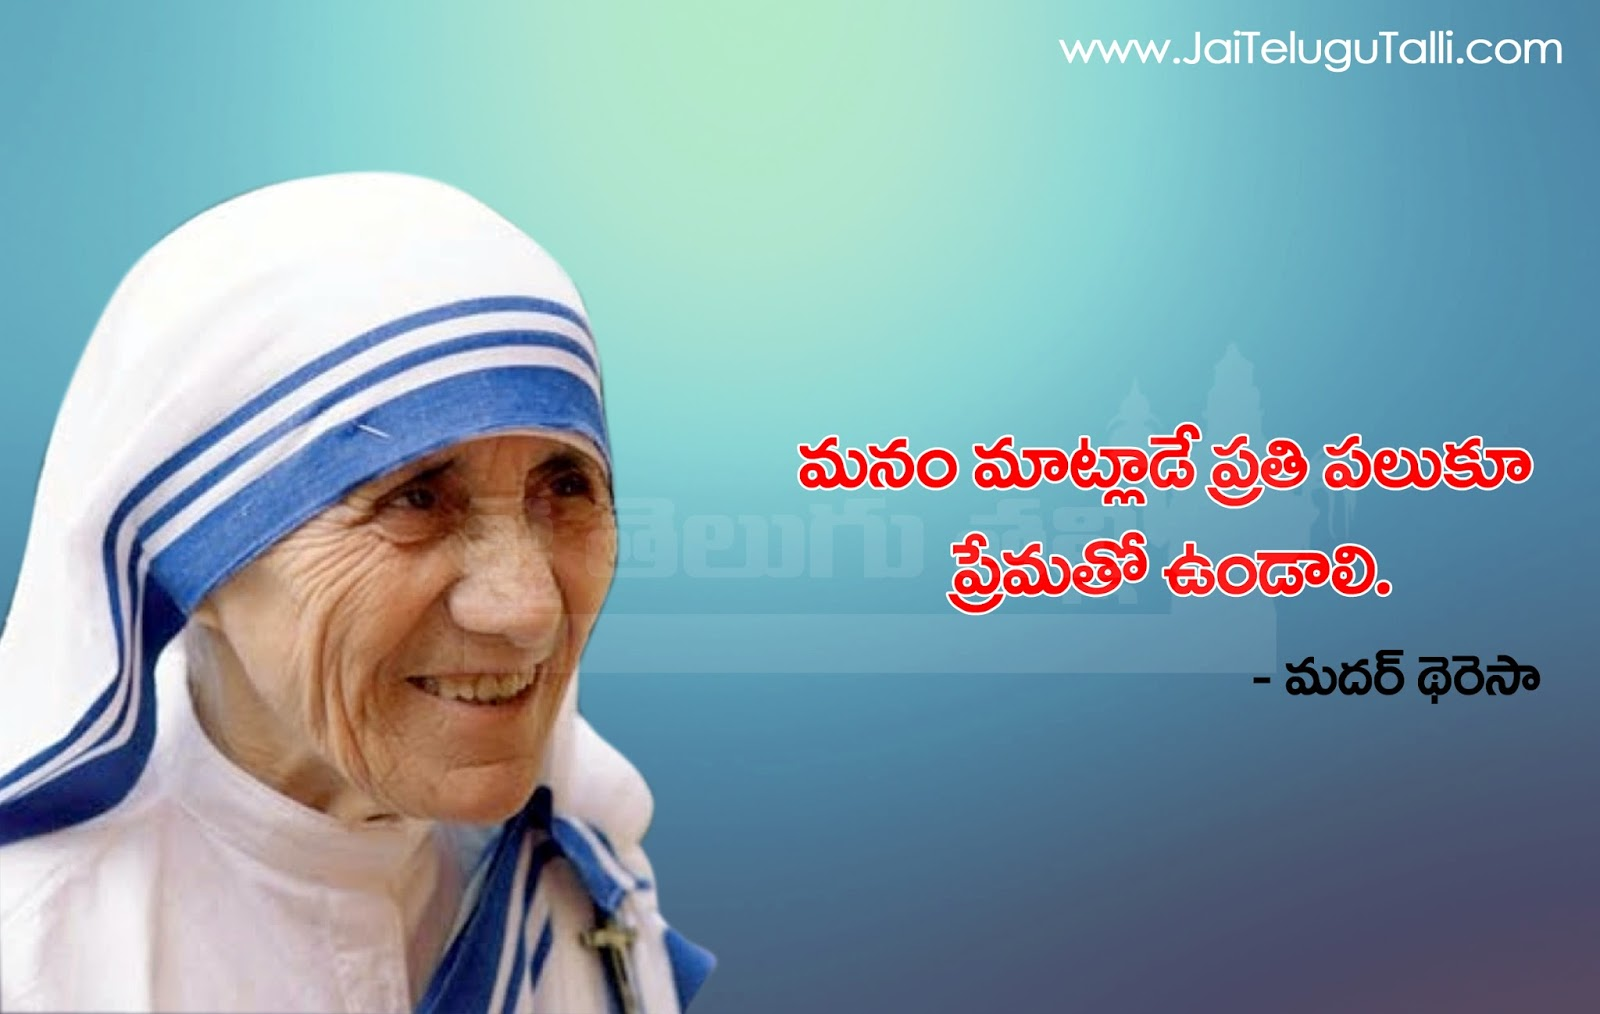 Telugu Funny Quotes Wallpapers Download Mother Teresa Wallpaper Gallery